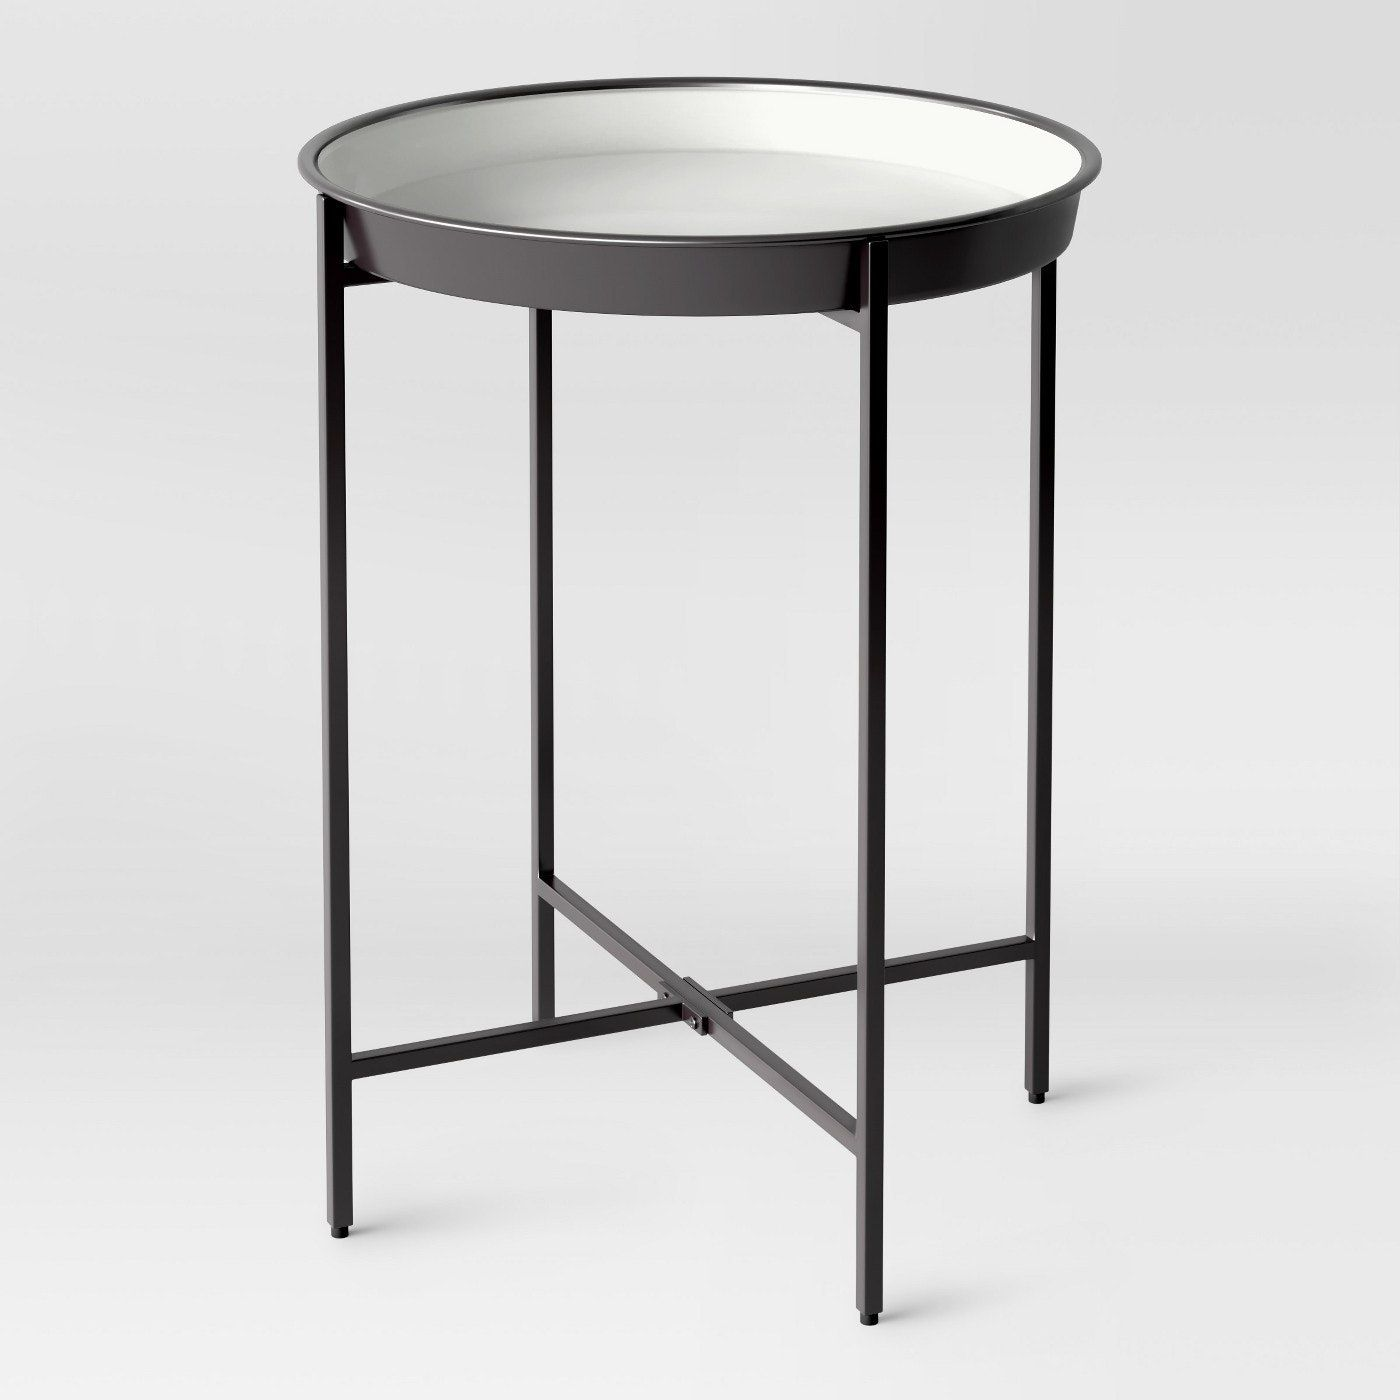 Best This 100 Side Table From Zara Looks So Expensive In 2020 640 x 480